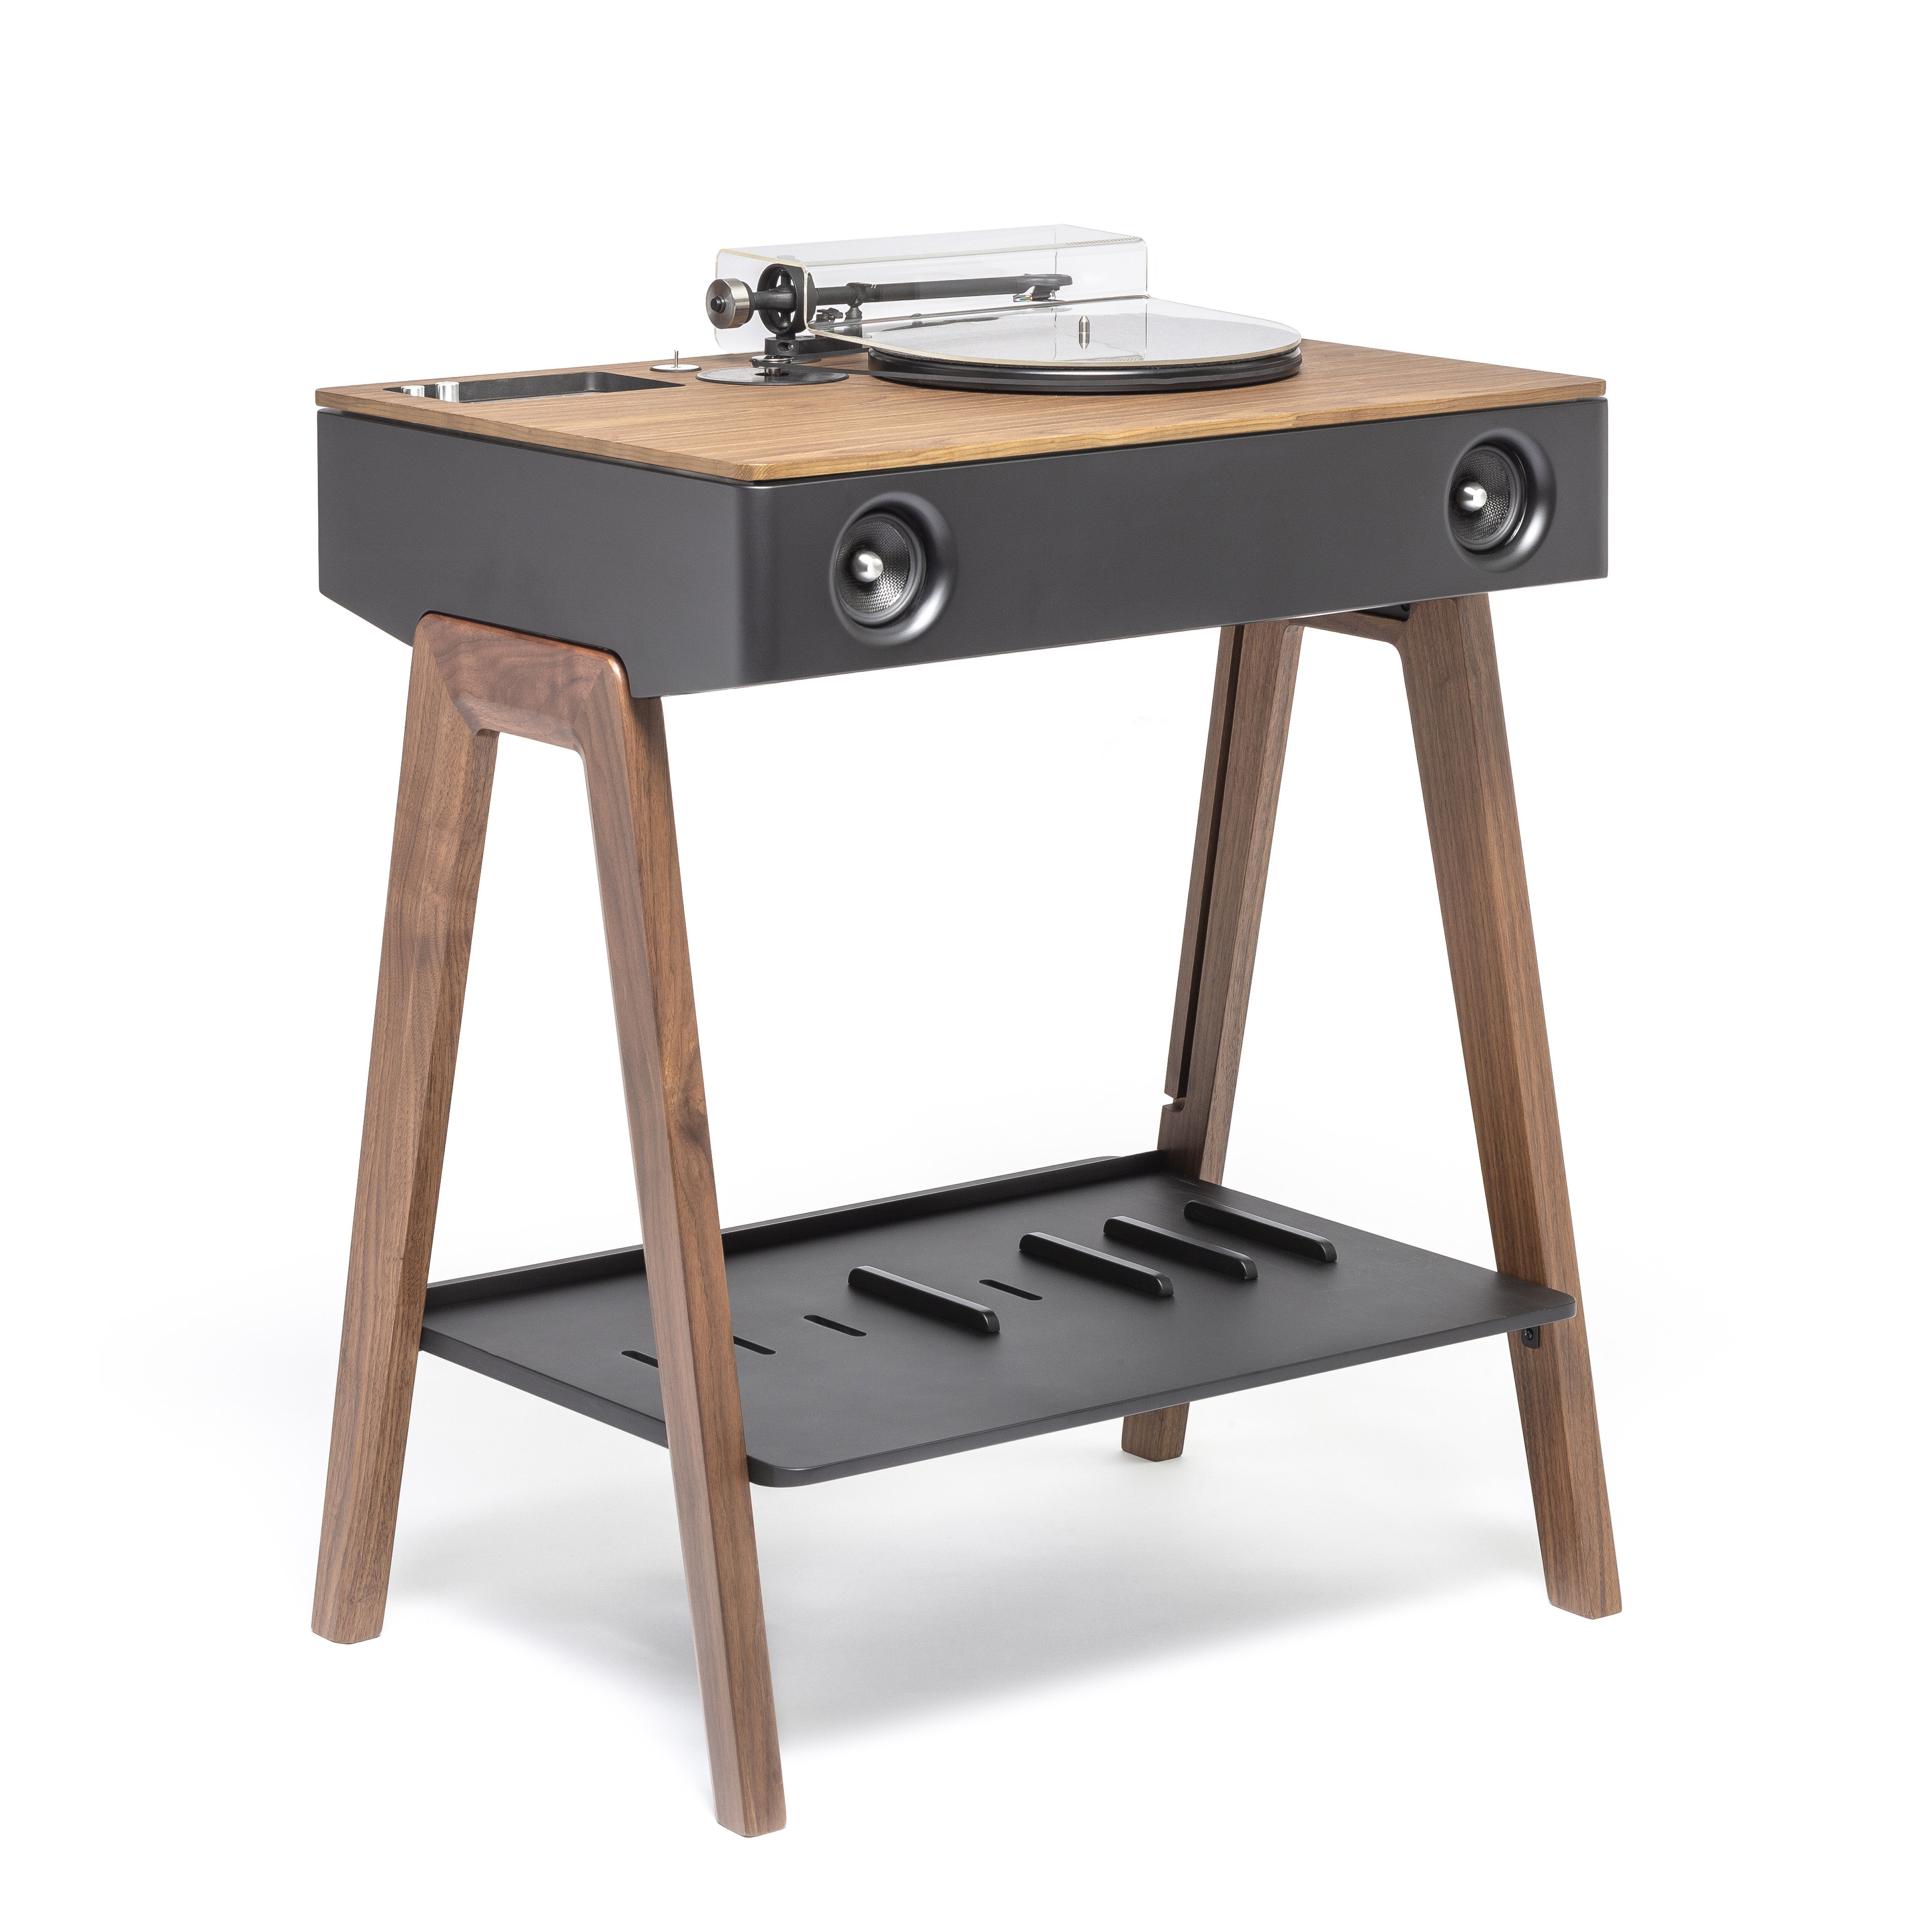 Accessories - Speakers & Audio - LX Platine Bluetooth speaker - / All-in-one active high-fidelity speaker with built-in turntable by La Boîte Concept - Walnut, black & silver - Aluminium, Plywood, Walnut